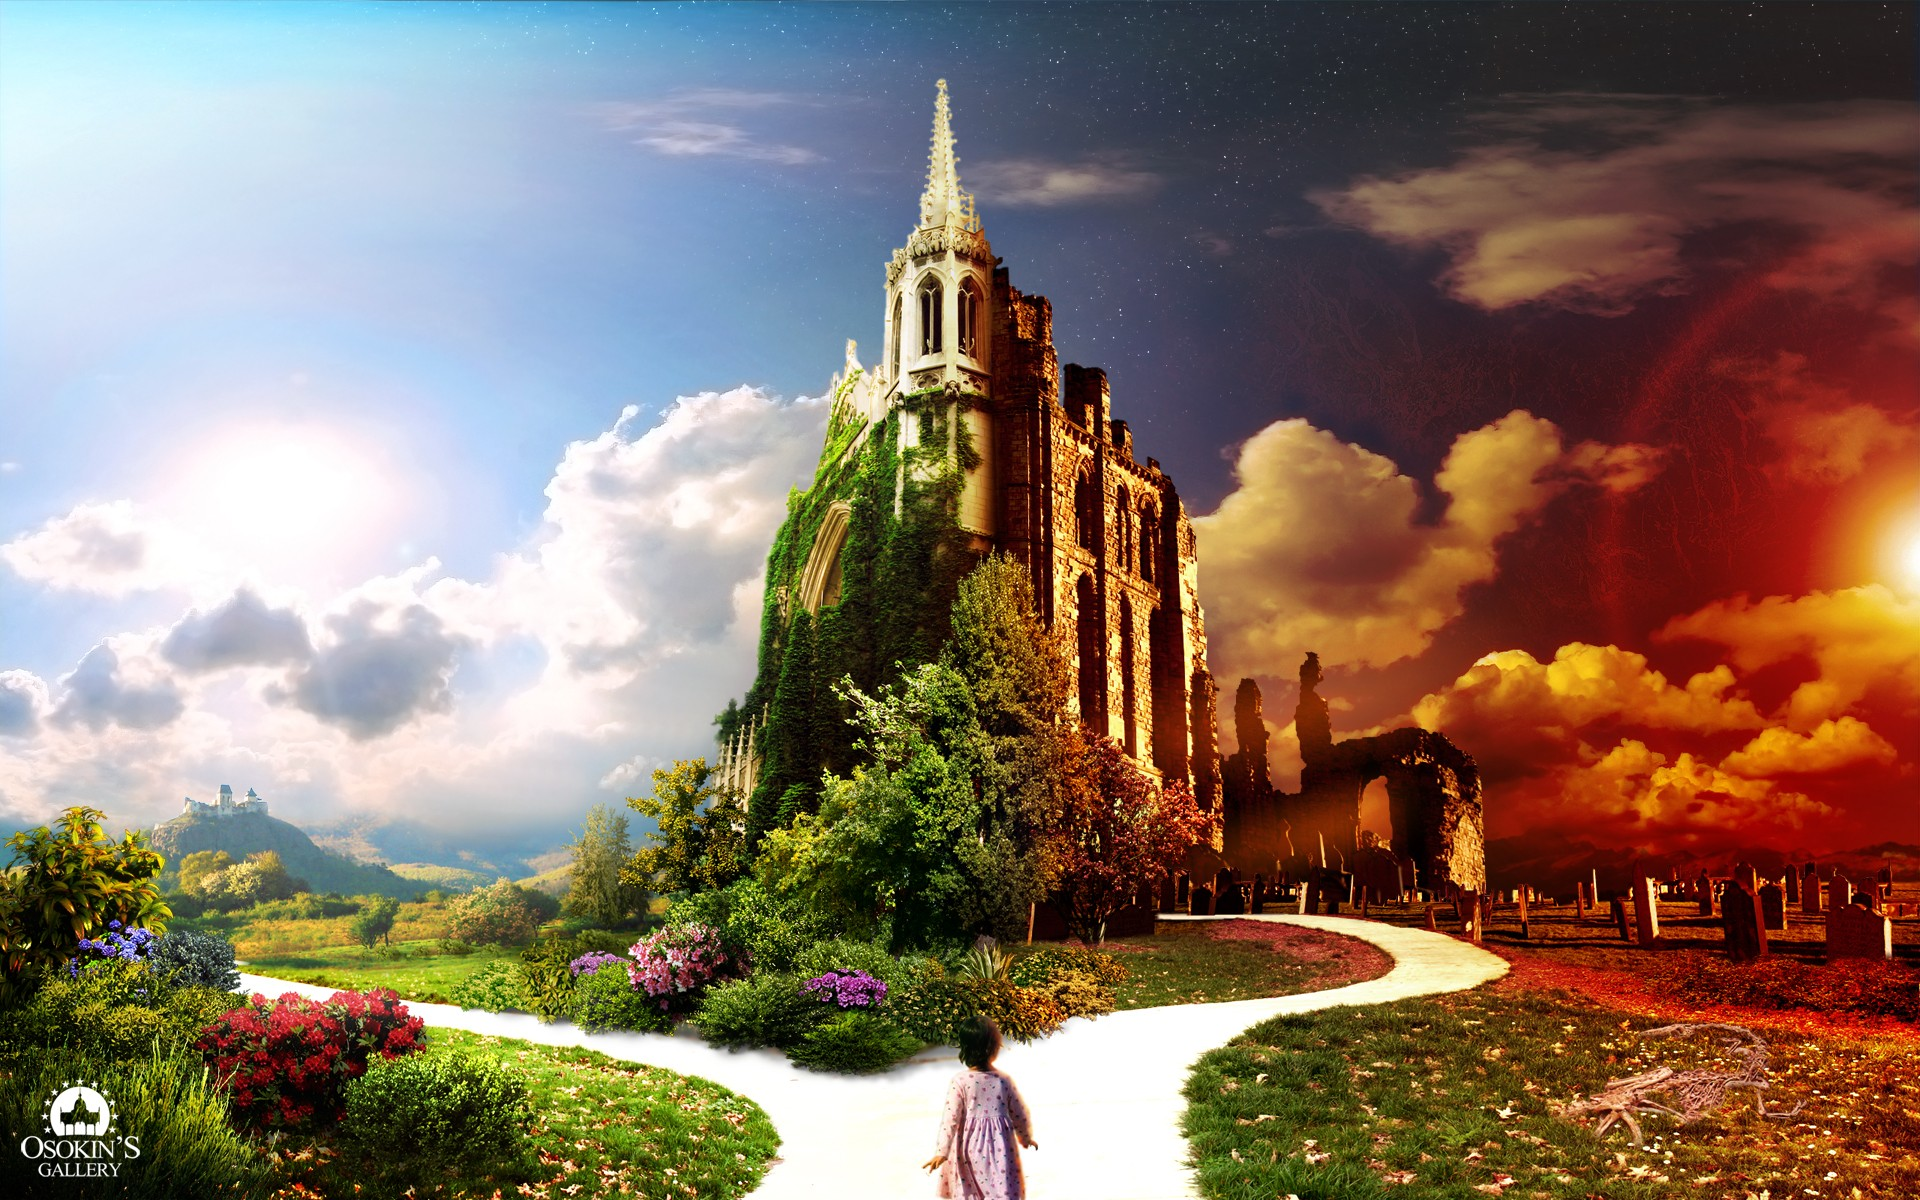 General 1920x1200 castle digital art sky plants flowers clouds